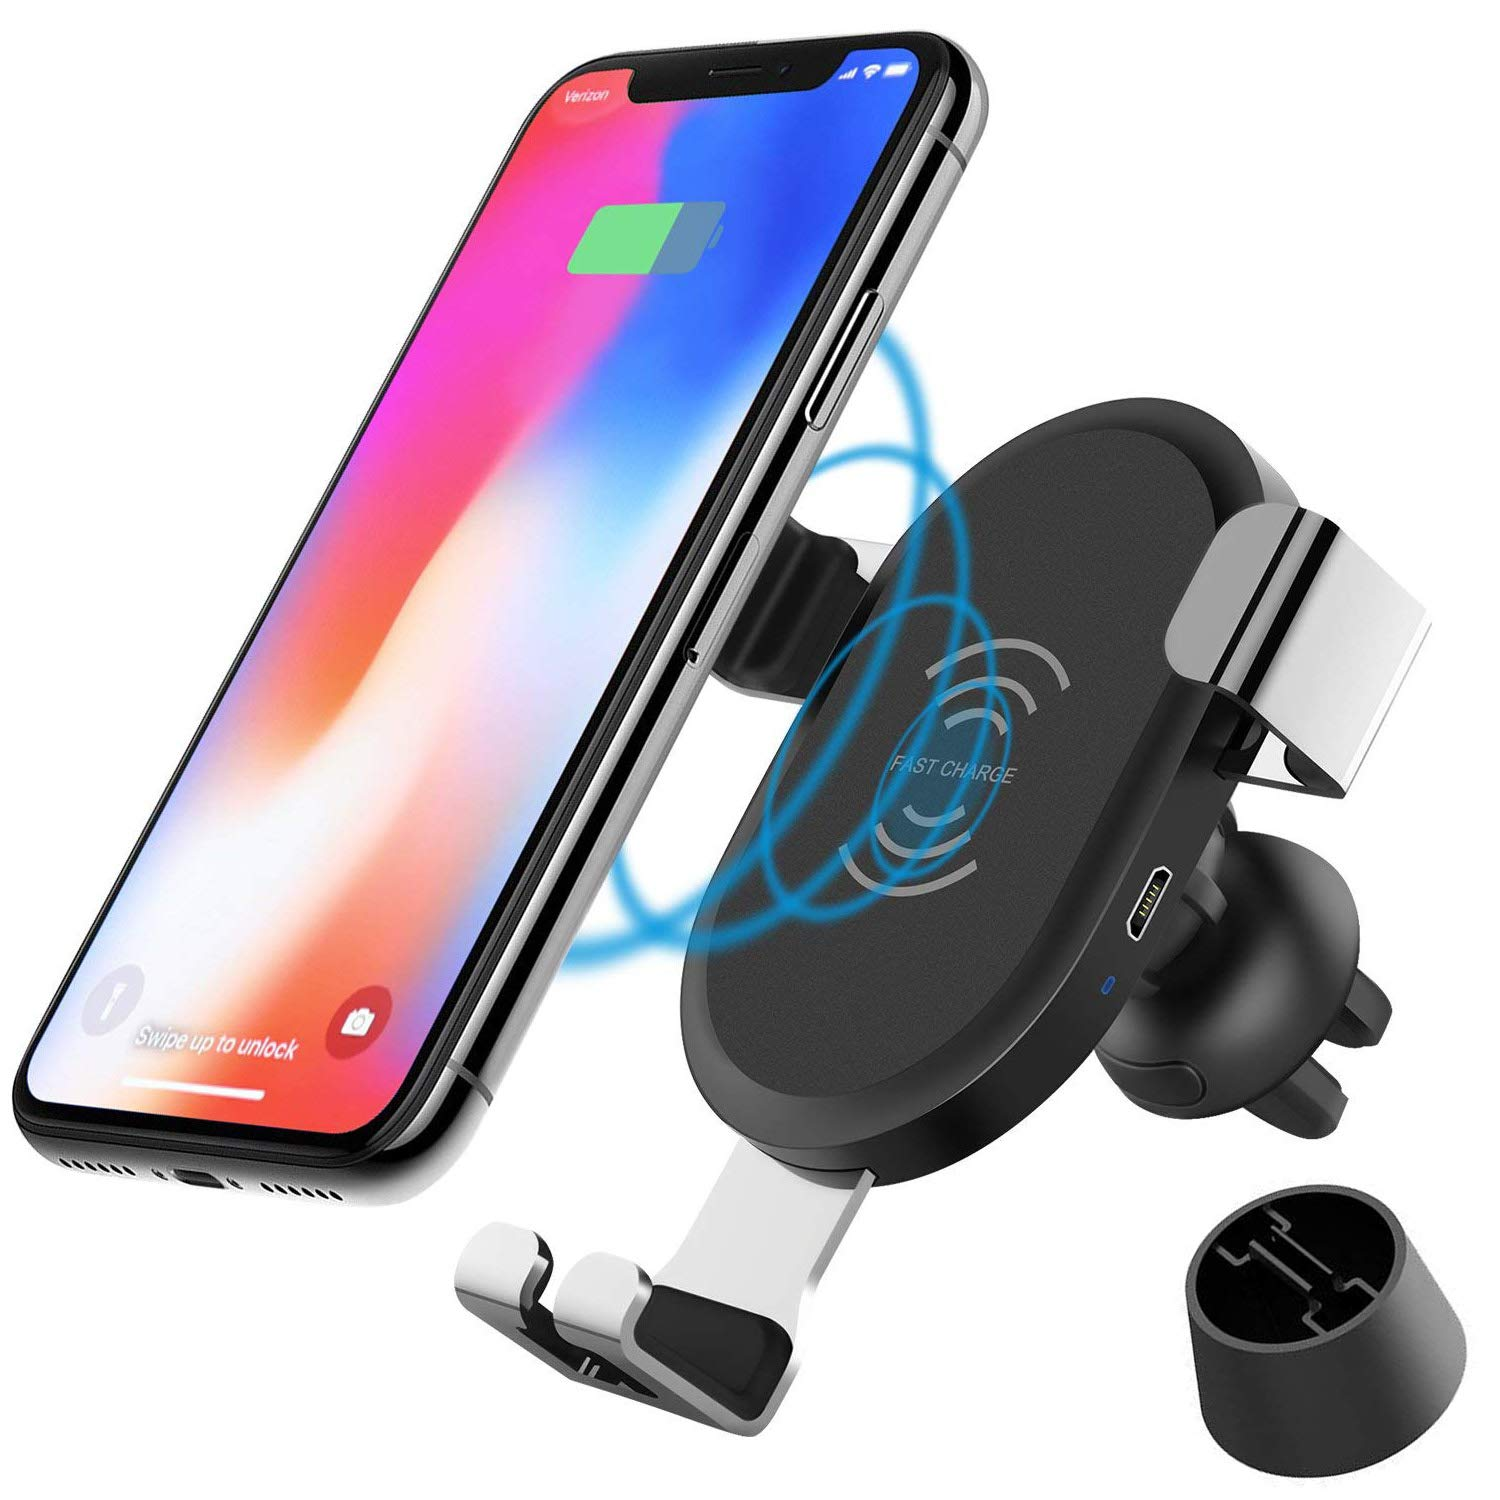 JCHIEN Wireless Car Charger Mount, Qi Wireless Charging Car Mount Air Vent Holder, 10W Fast Charge Samsung Galaxy S7 S8 S9, S9 Plus, Note 8 5, 7.5W Standard Charging Compatible iPhone X, 8/8 Plus